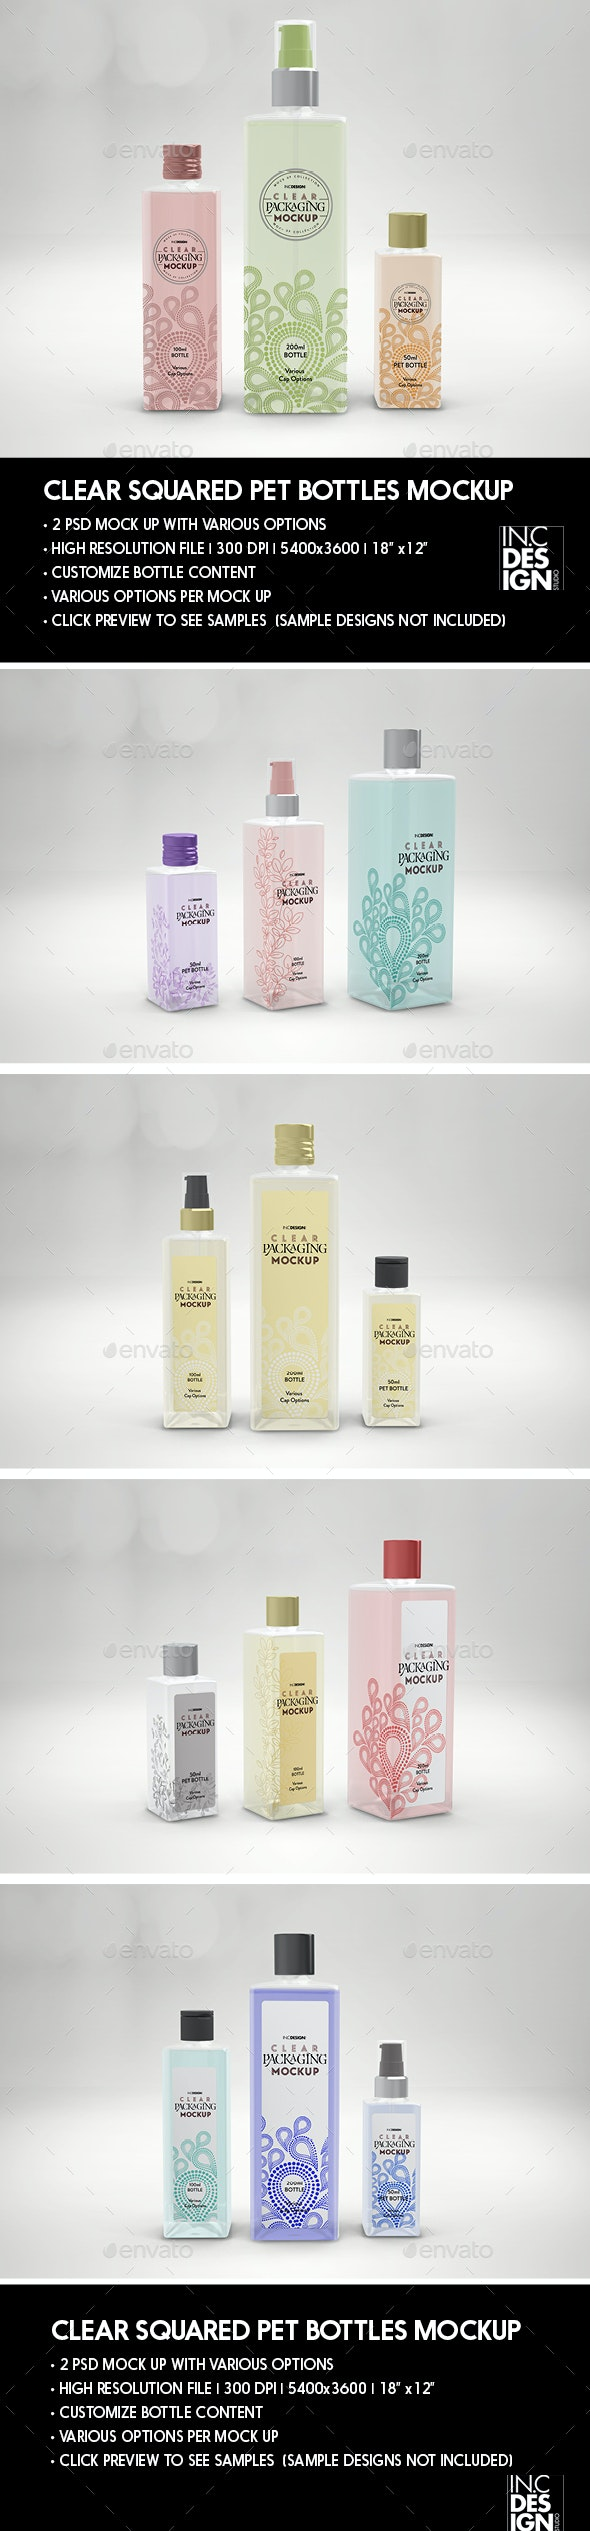 Clear Square PET Bottles 3 sizes Packaging Mockup - Beauty Packaging